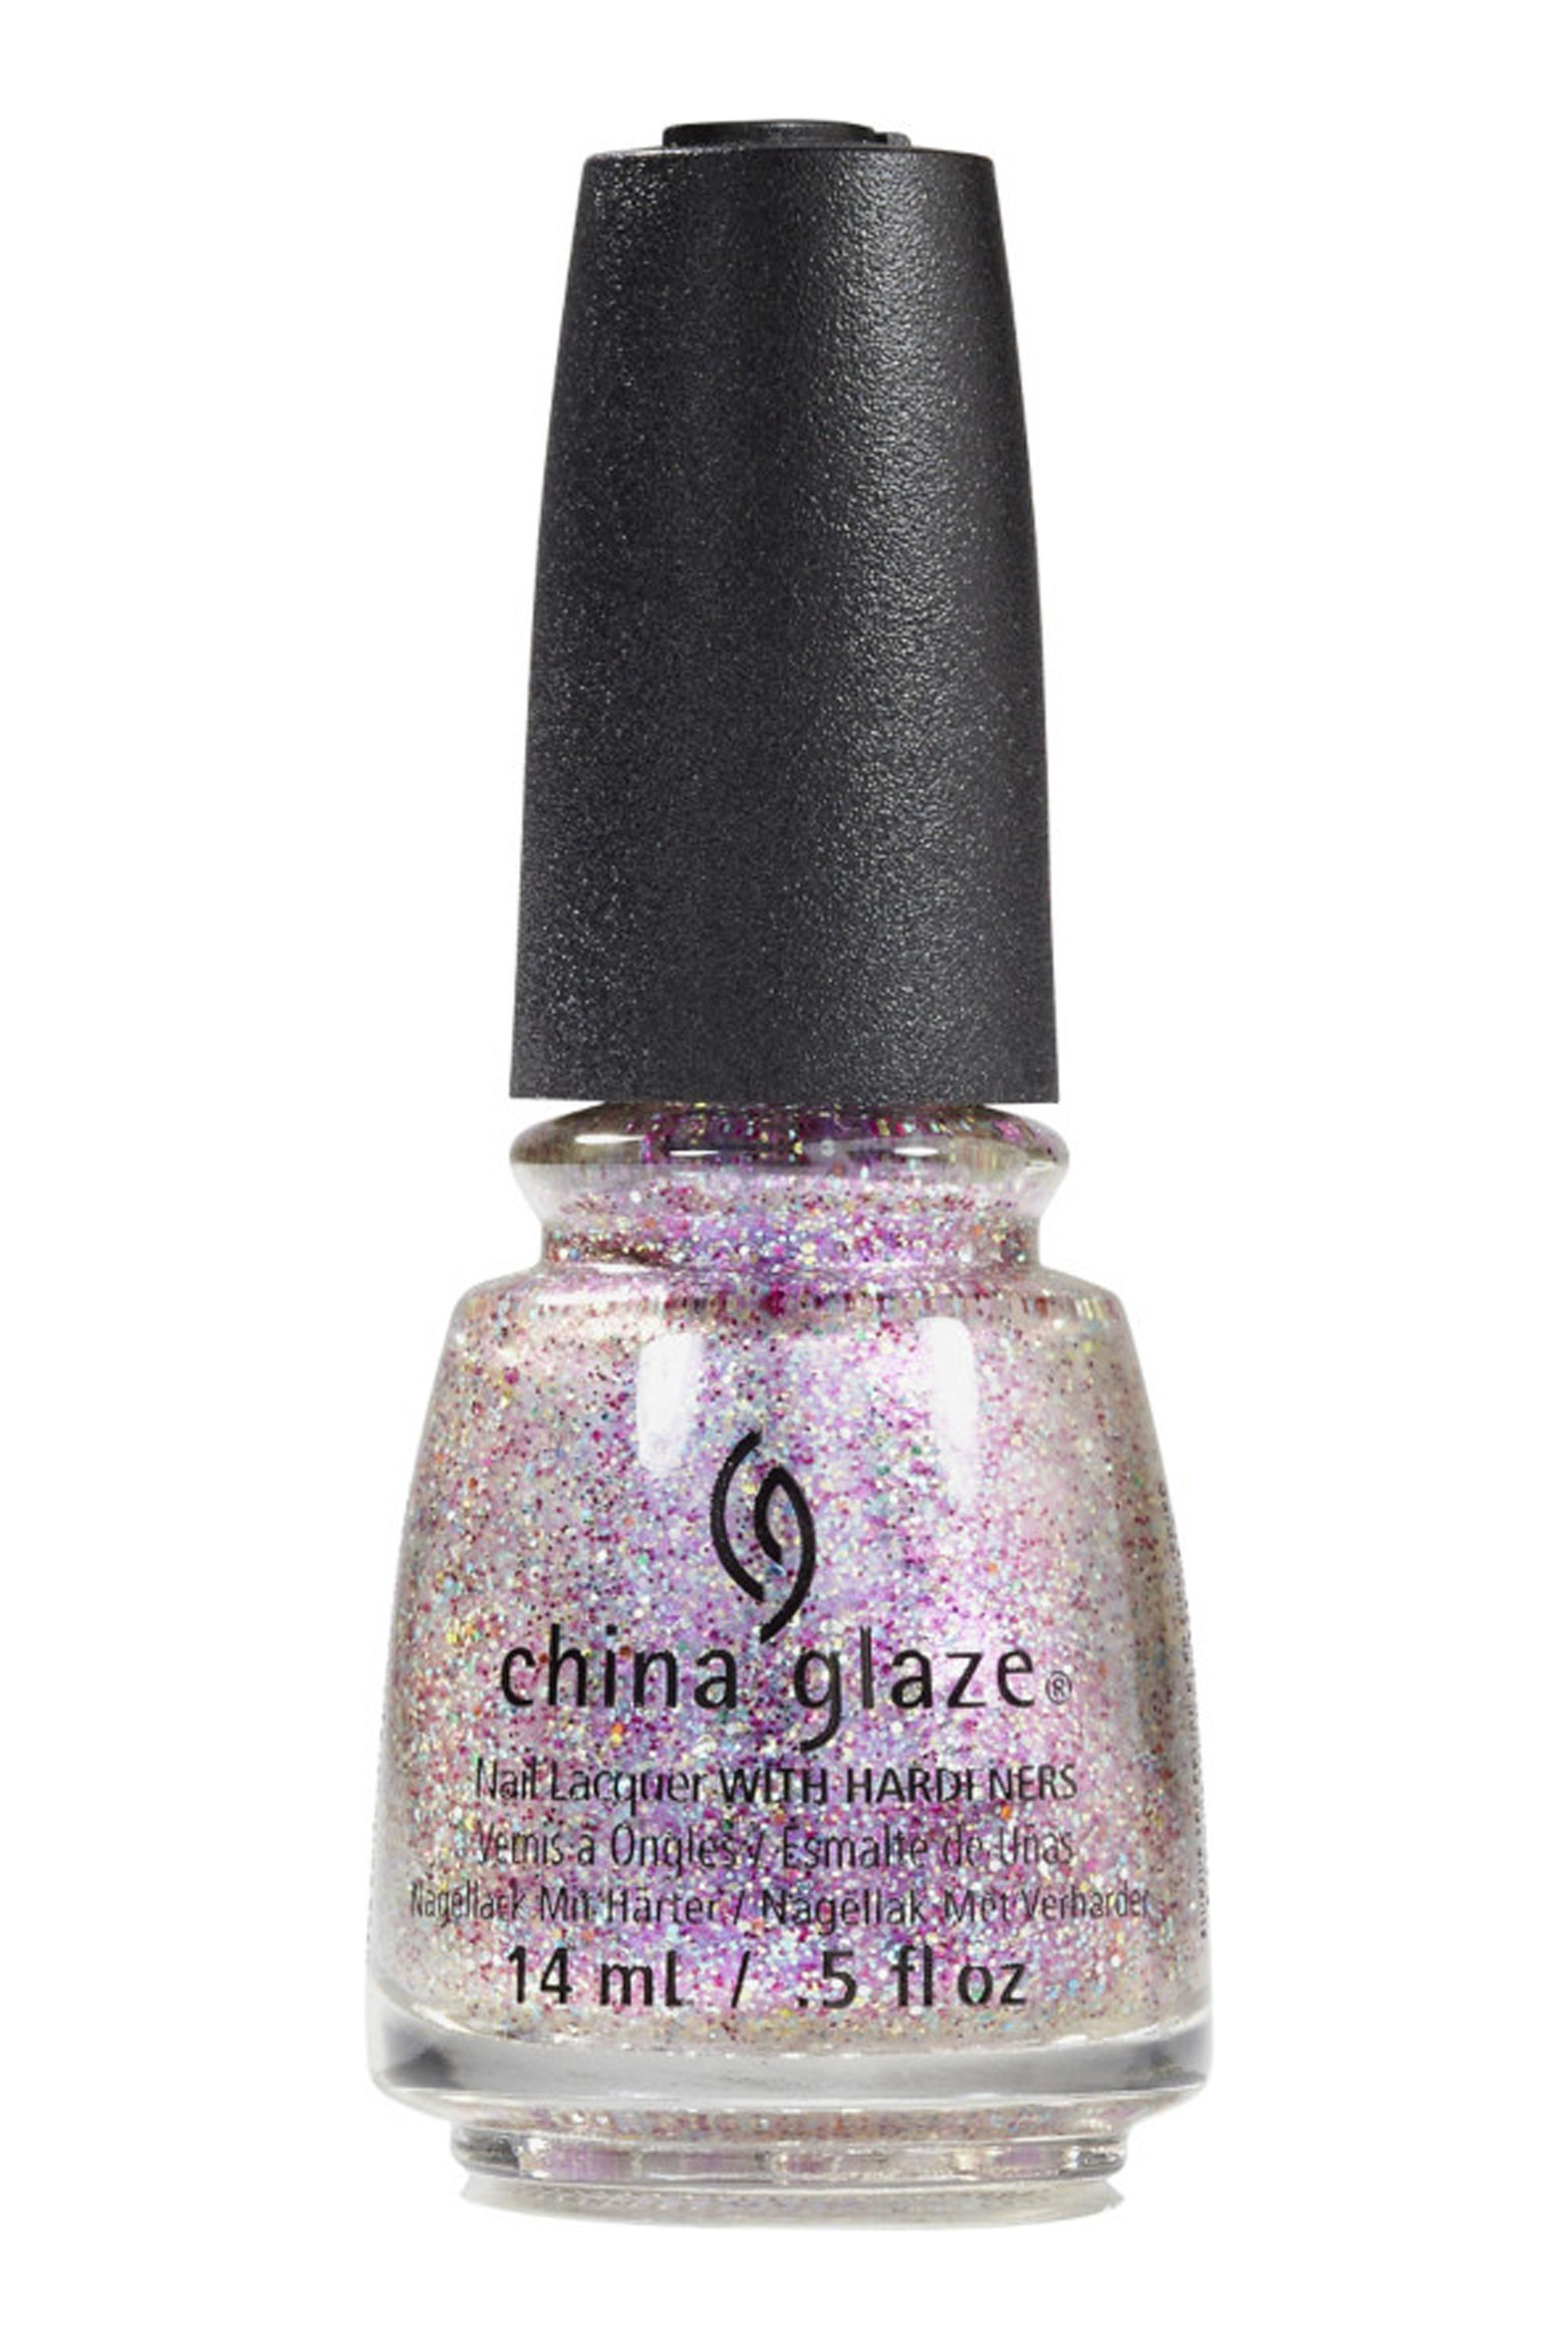 10 Gorgeous Glitter Nail Polishes Youll Never Want to Remove